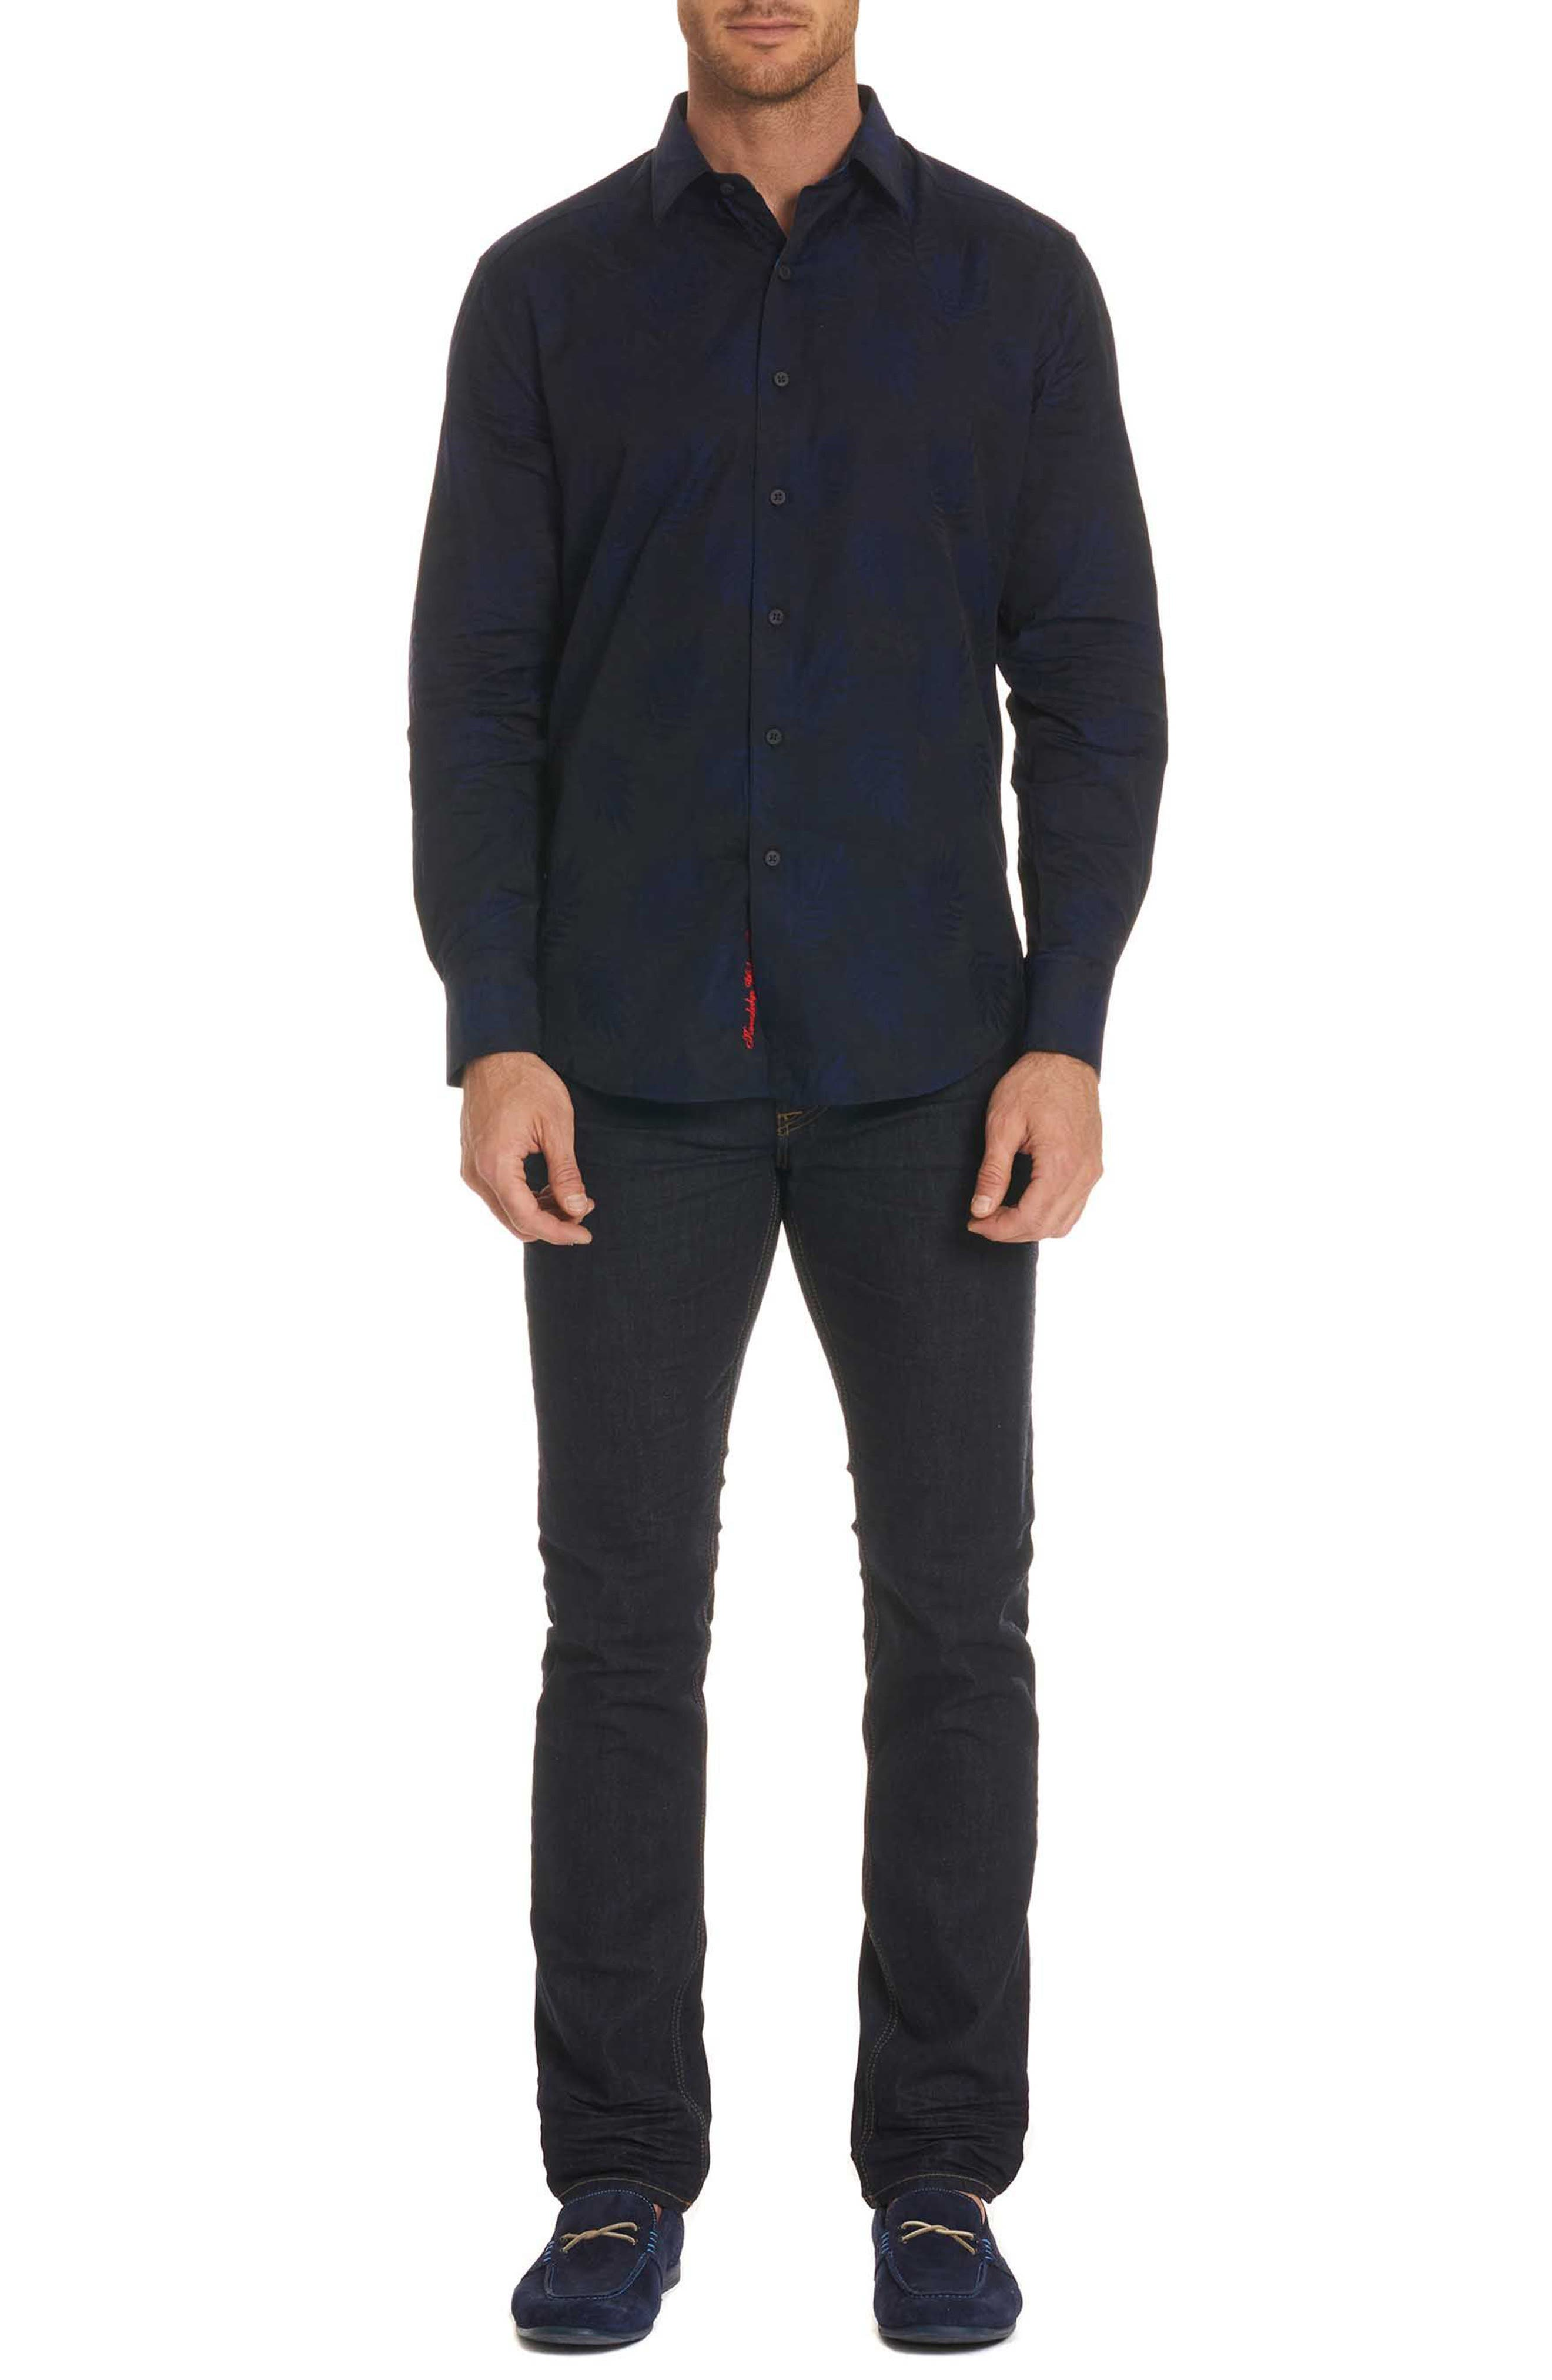 Monte Classic Fit Sport Shirt,                             Alternate thumbnail 7, color,                             Midnight Navy